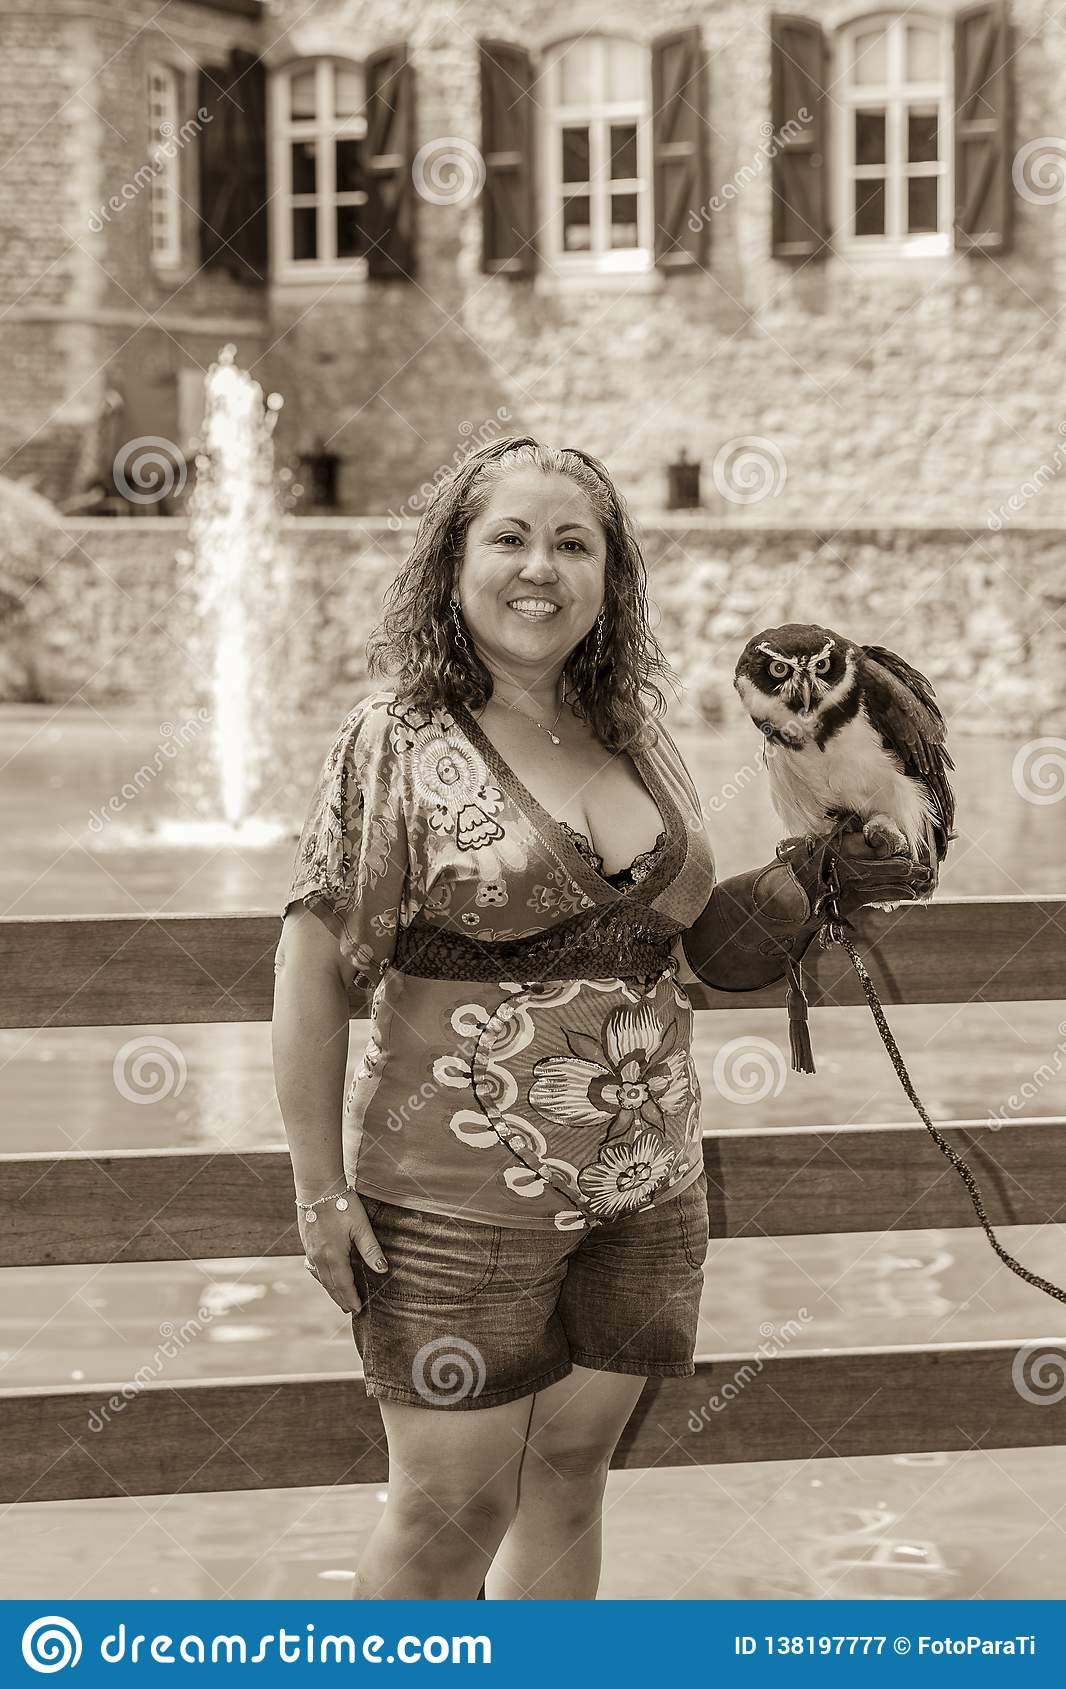 Beautiful image black and white of a smiling woman posing with an owl in her hand